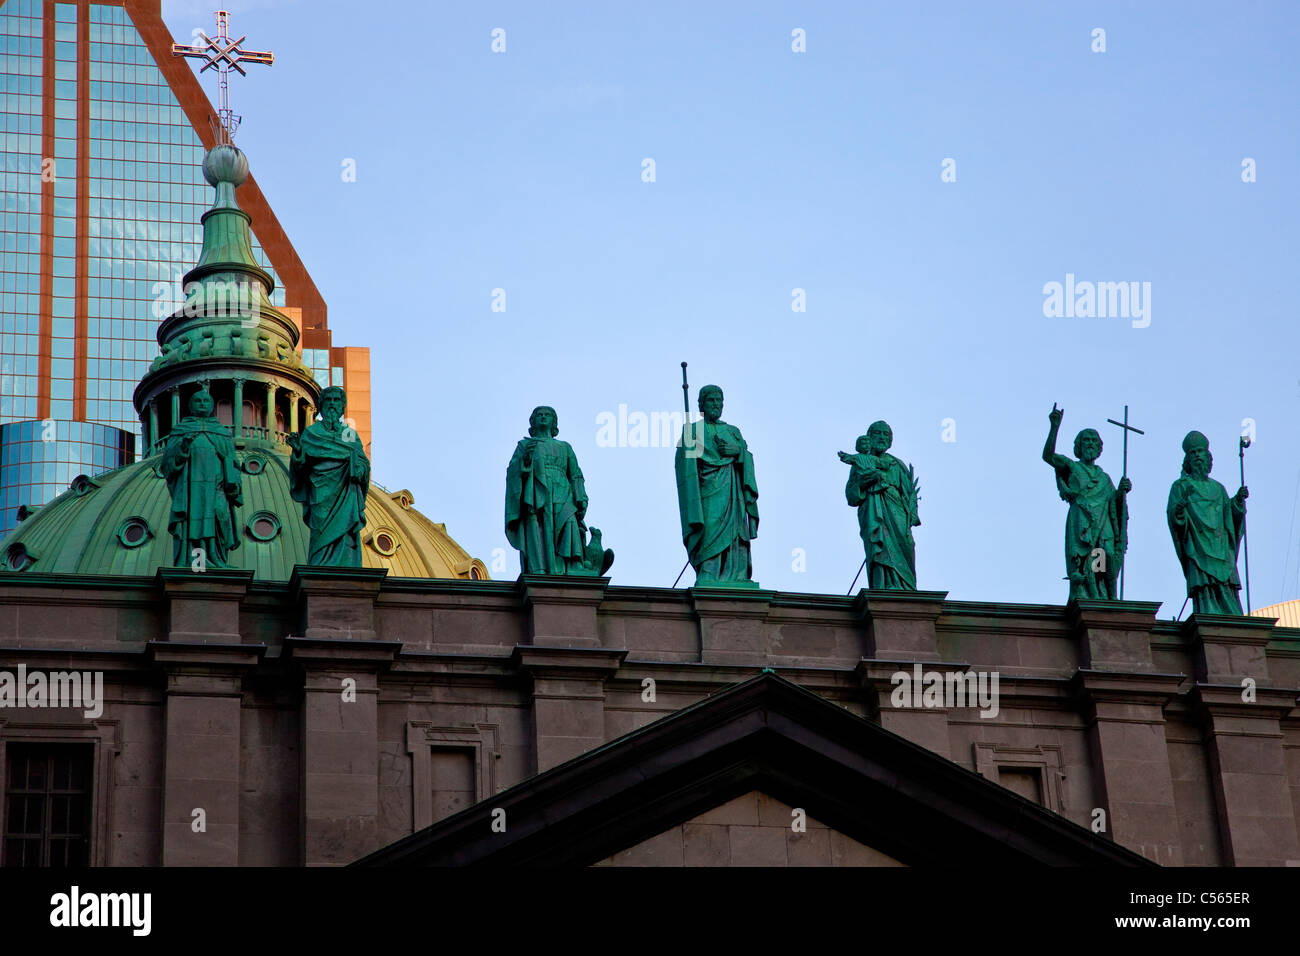 Roman Catholic Cathedral-Basilica of Mary, Queen of the World, Montreal, Quebec, Canada - Stock Image